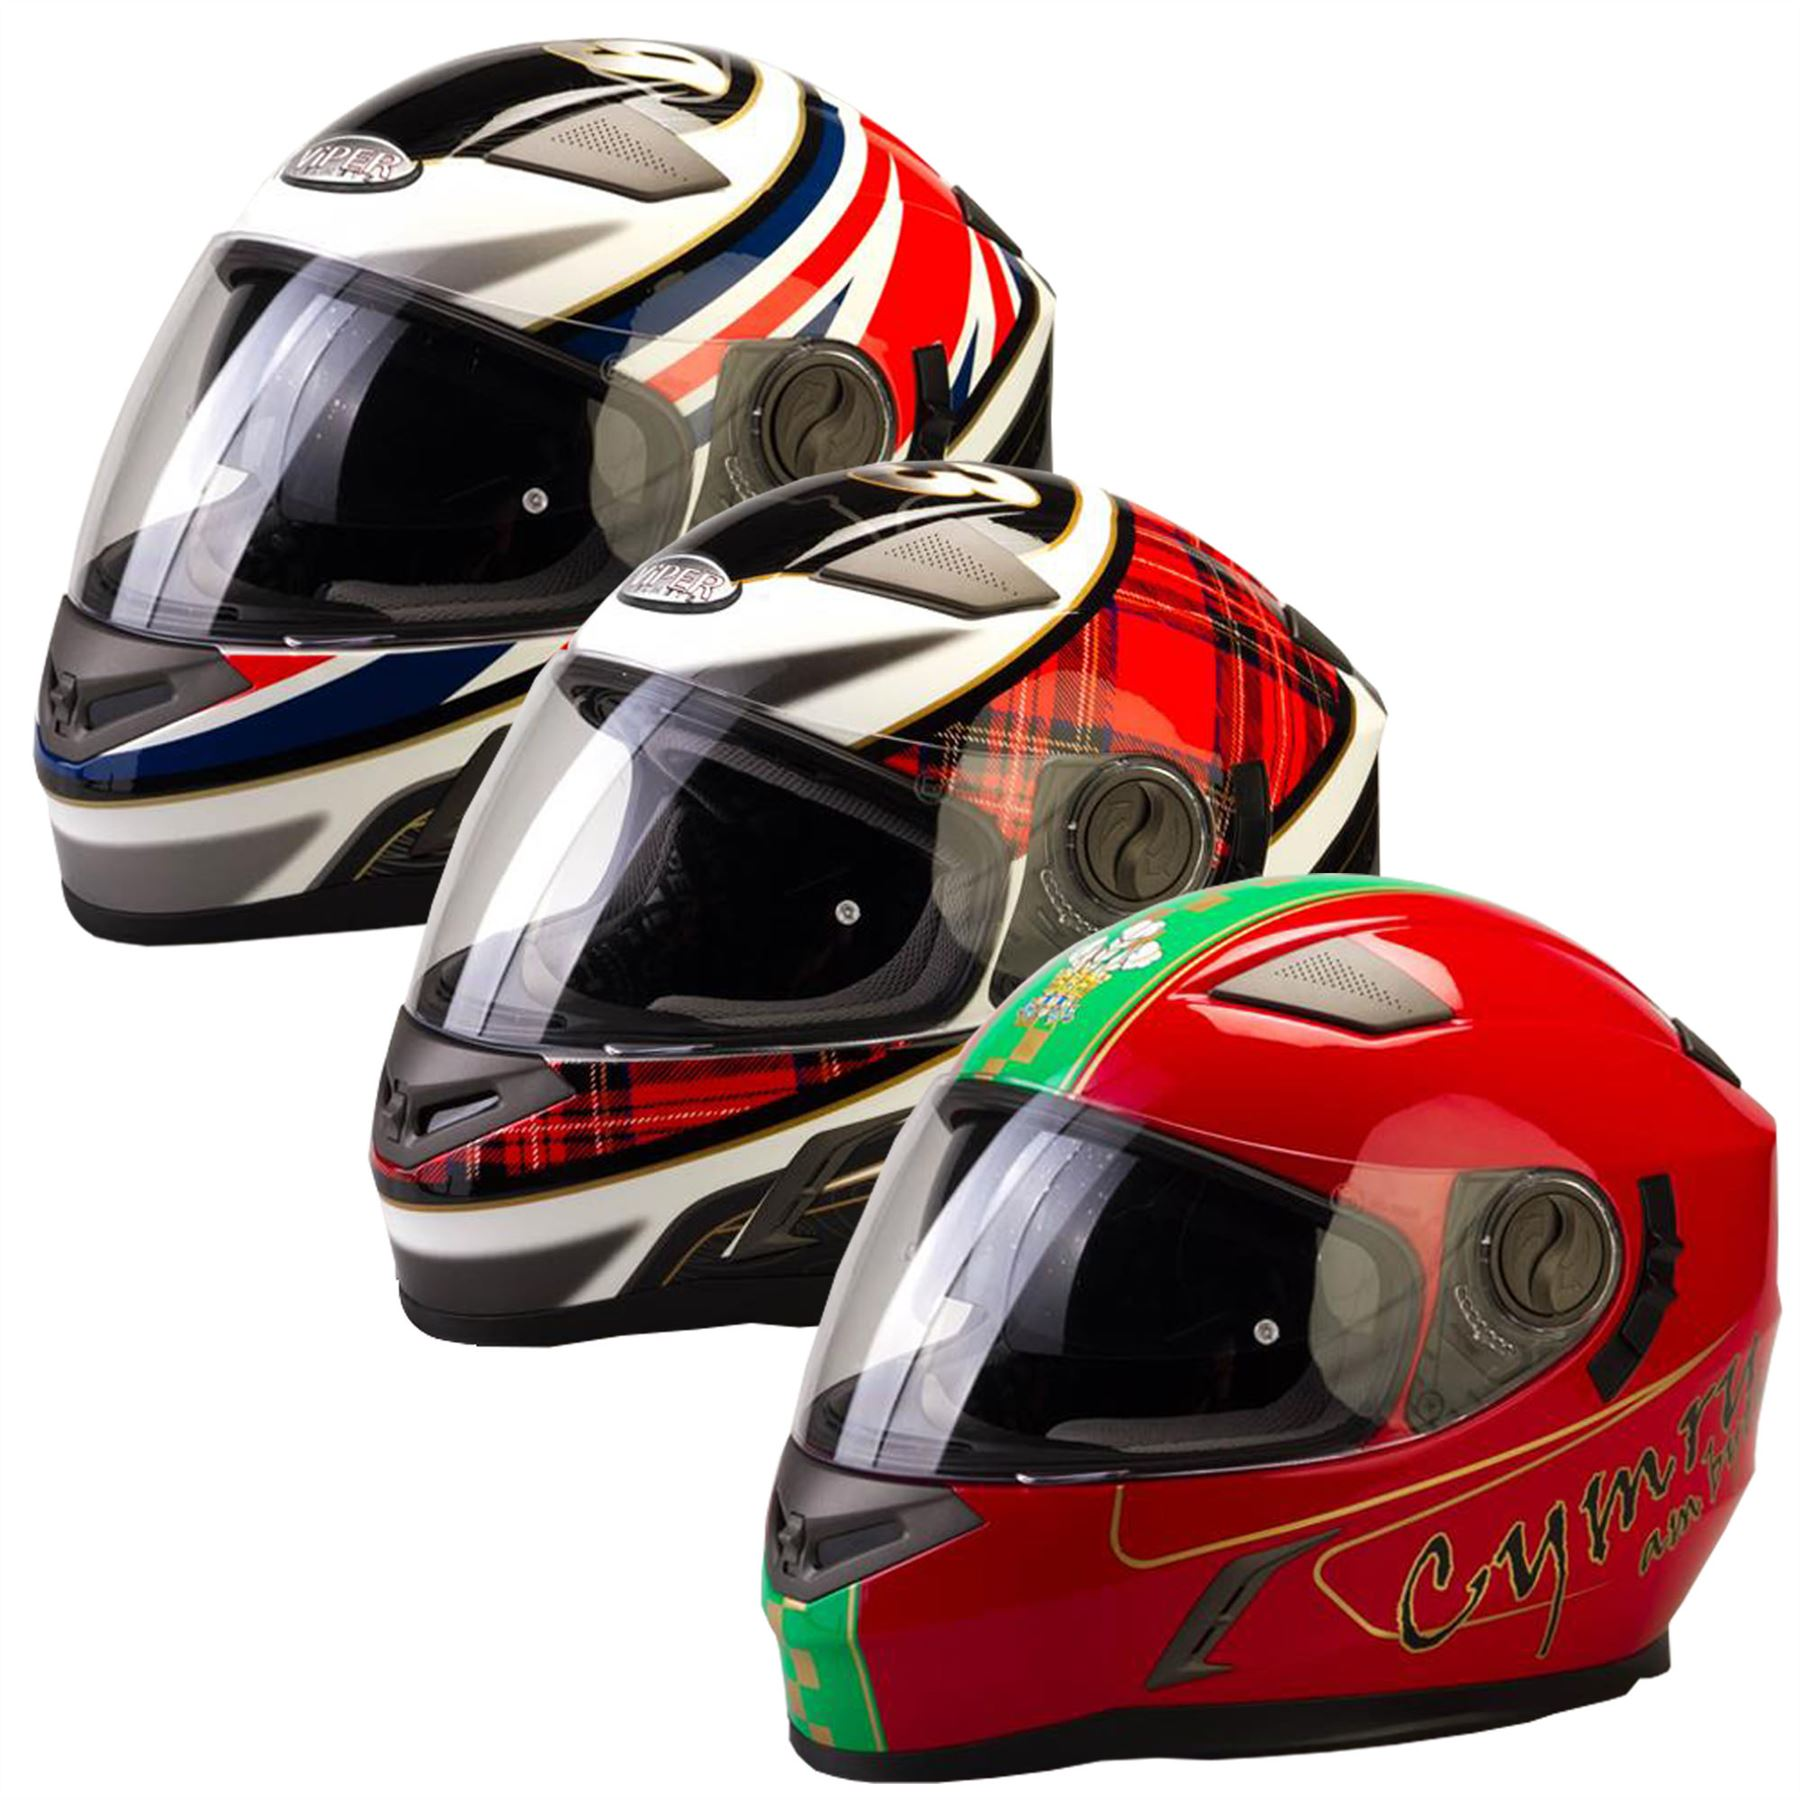 f8ea17b0 Details about Viper RSV9 Motorbike Ful Face Helmet Motorcycle Moped With  Retractable Sun visor